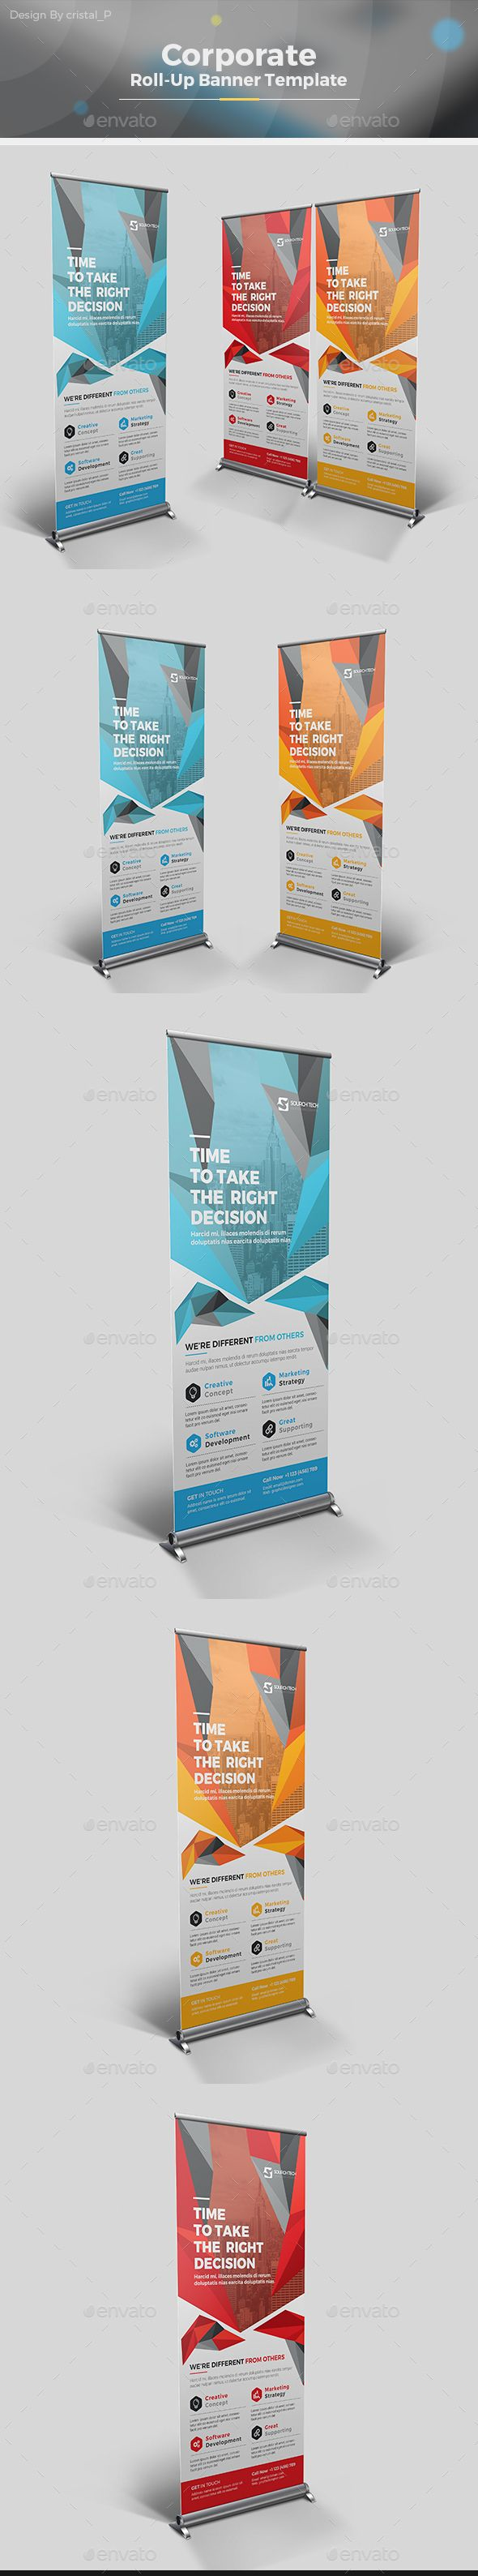 Roll-up Banner by CRISTAL_P Corporate Roll-up Banner Template Designis very easy...